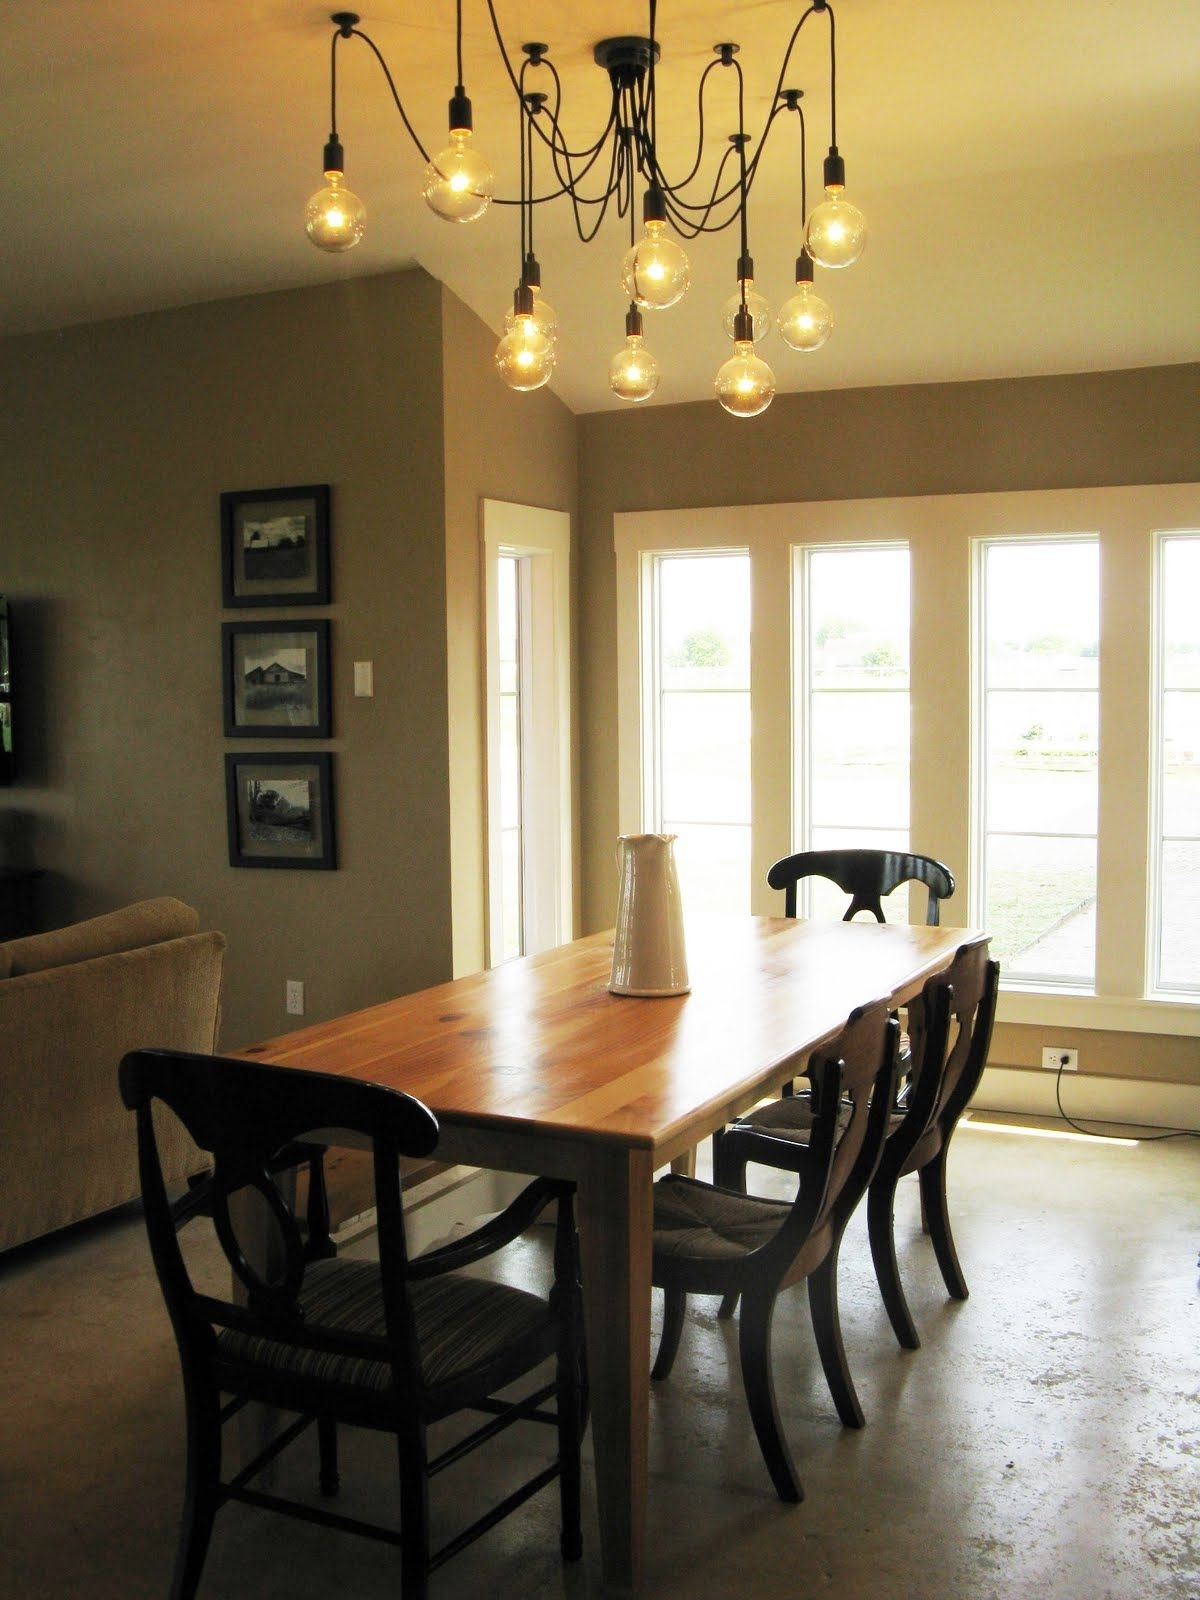 Dining Tables Lighting Pertaining To Most Recent Dinning Room Table Light Fixture (Gallery 9 of 25)